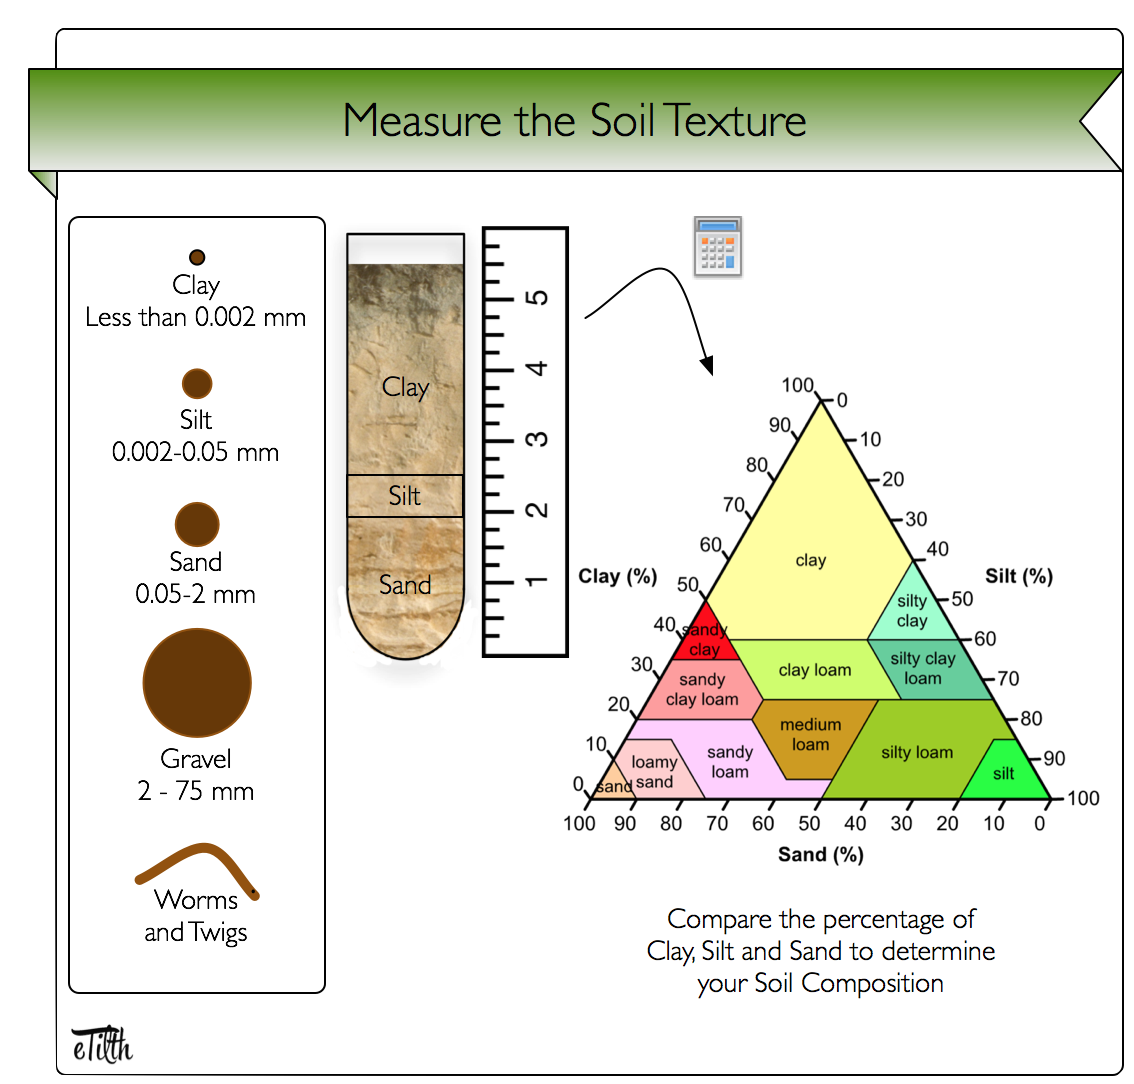 Triangle Shaped Graphic Showing Percent Of Clay Silt And